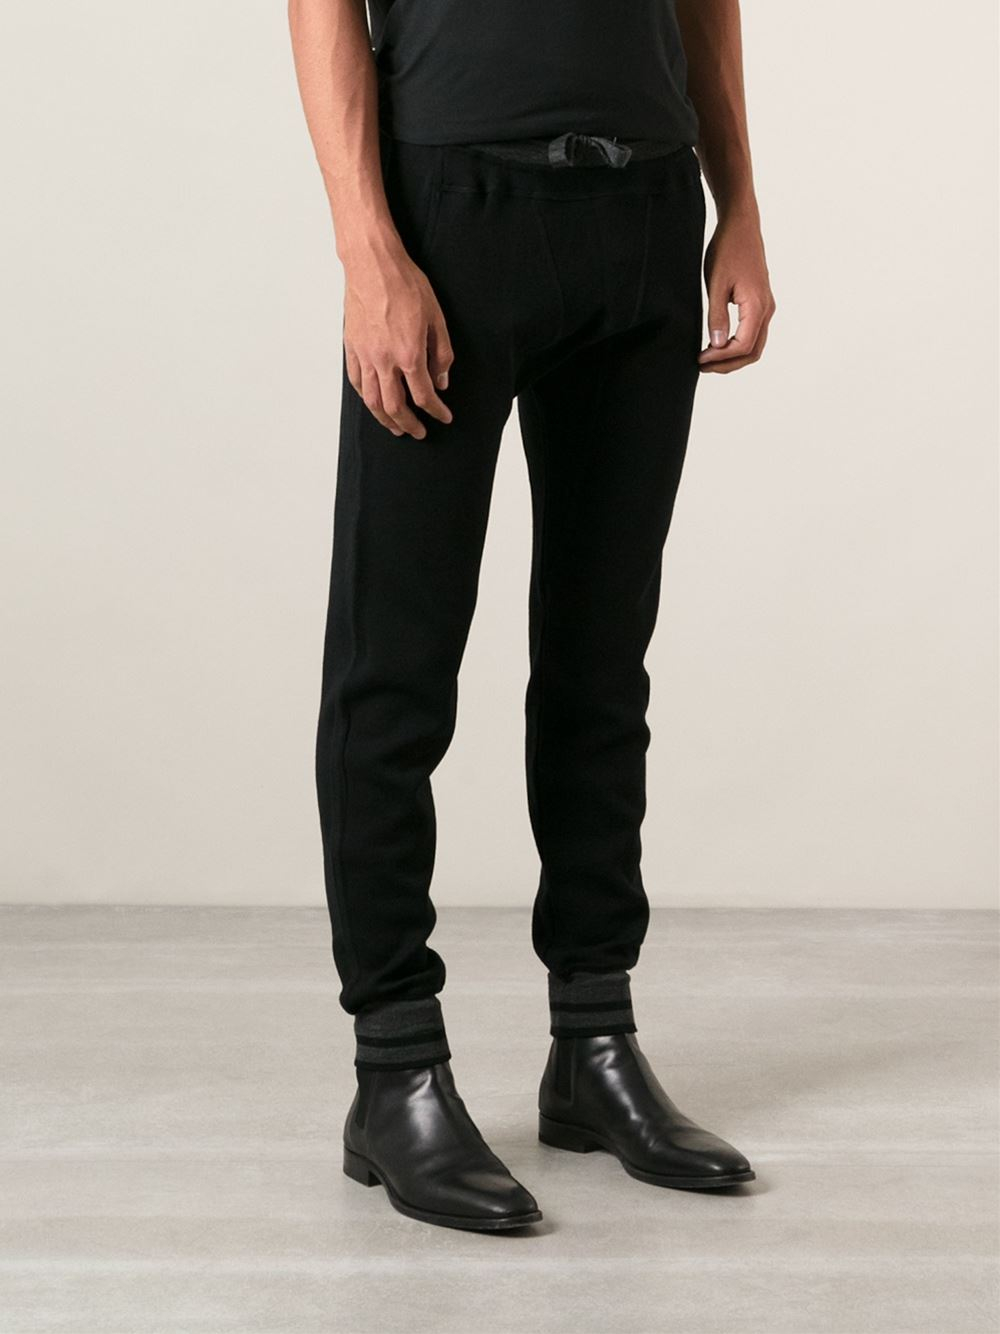 Tapered pants offer smooth textures and athletic fits that you're sure to love. Mesh pockets are great for storing small items, and elastic waistbands provide a custom-like fit. Looking for something else? Check out the entire collection of men's athletic pants at DICK'S Sporting Goods.